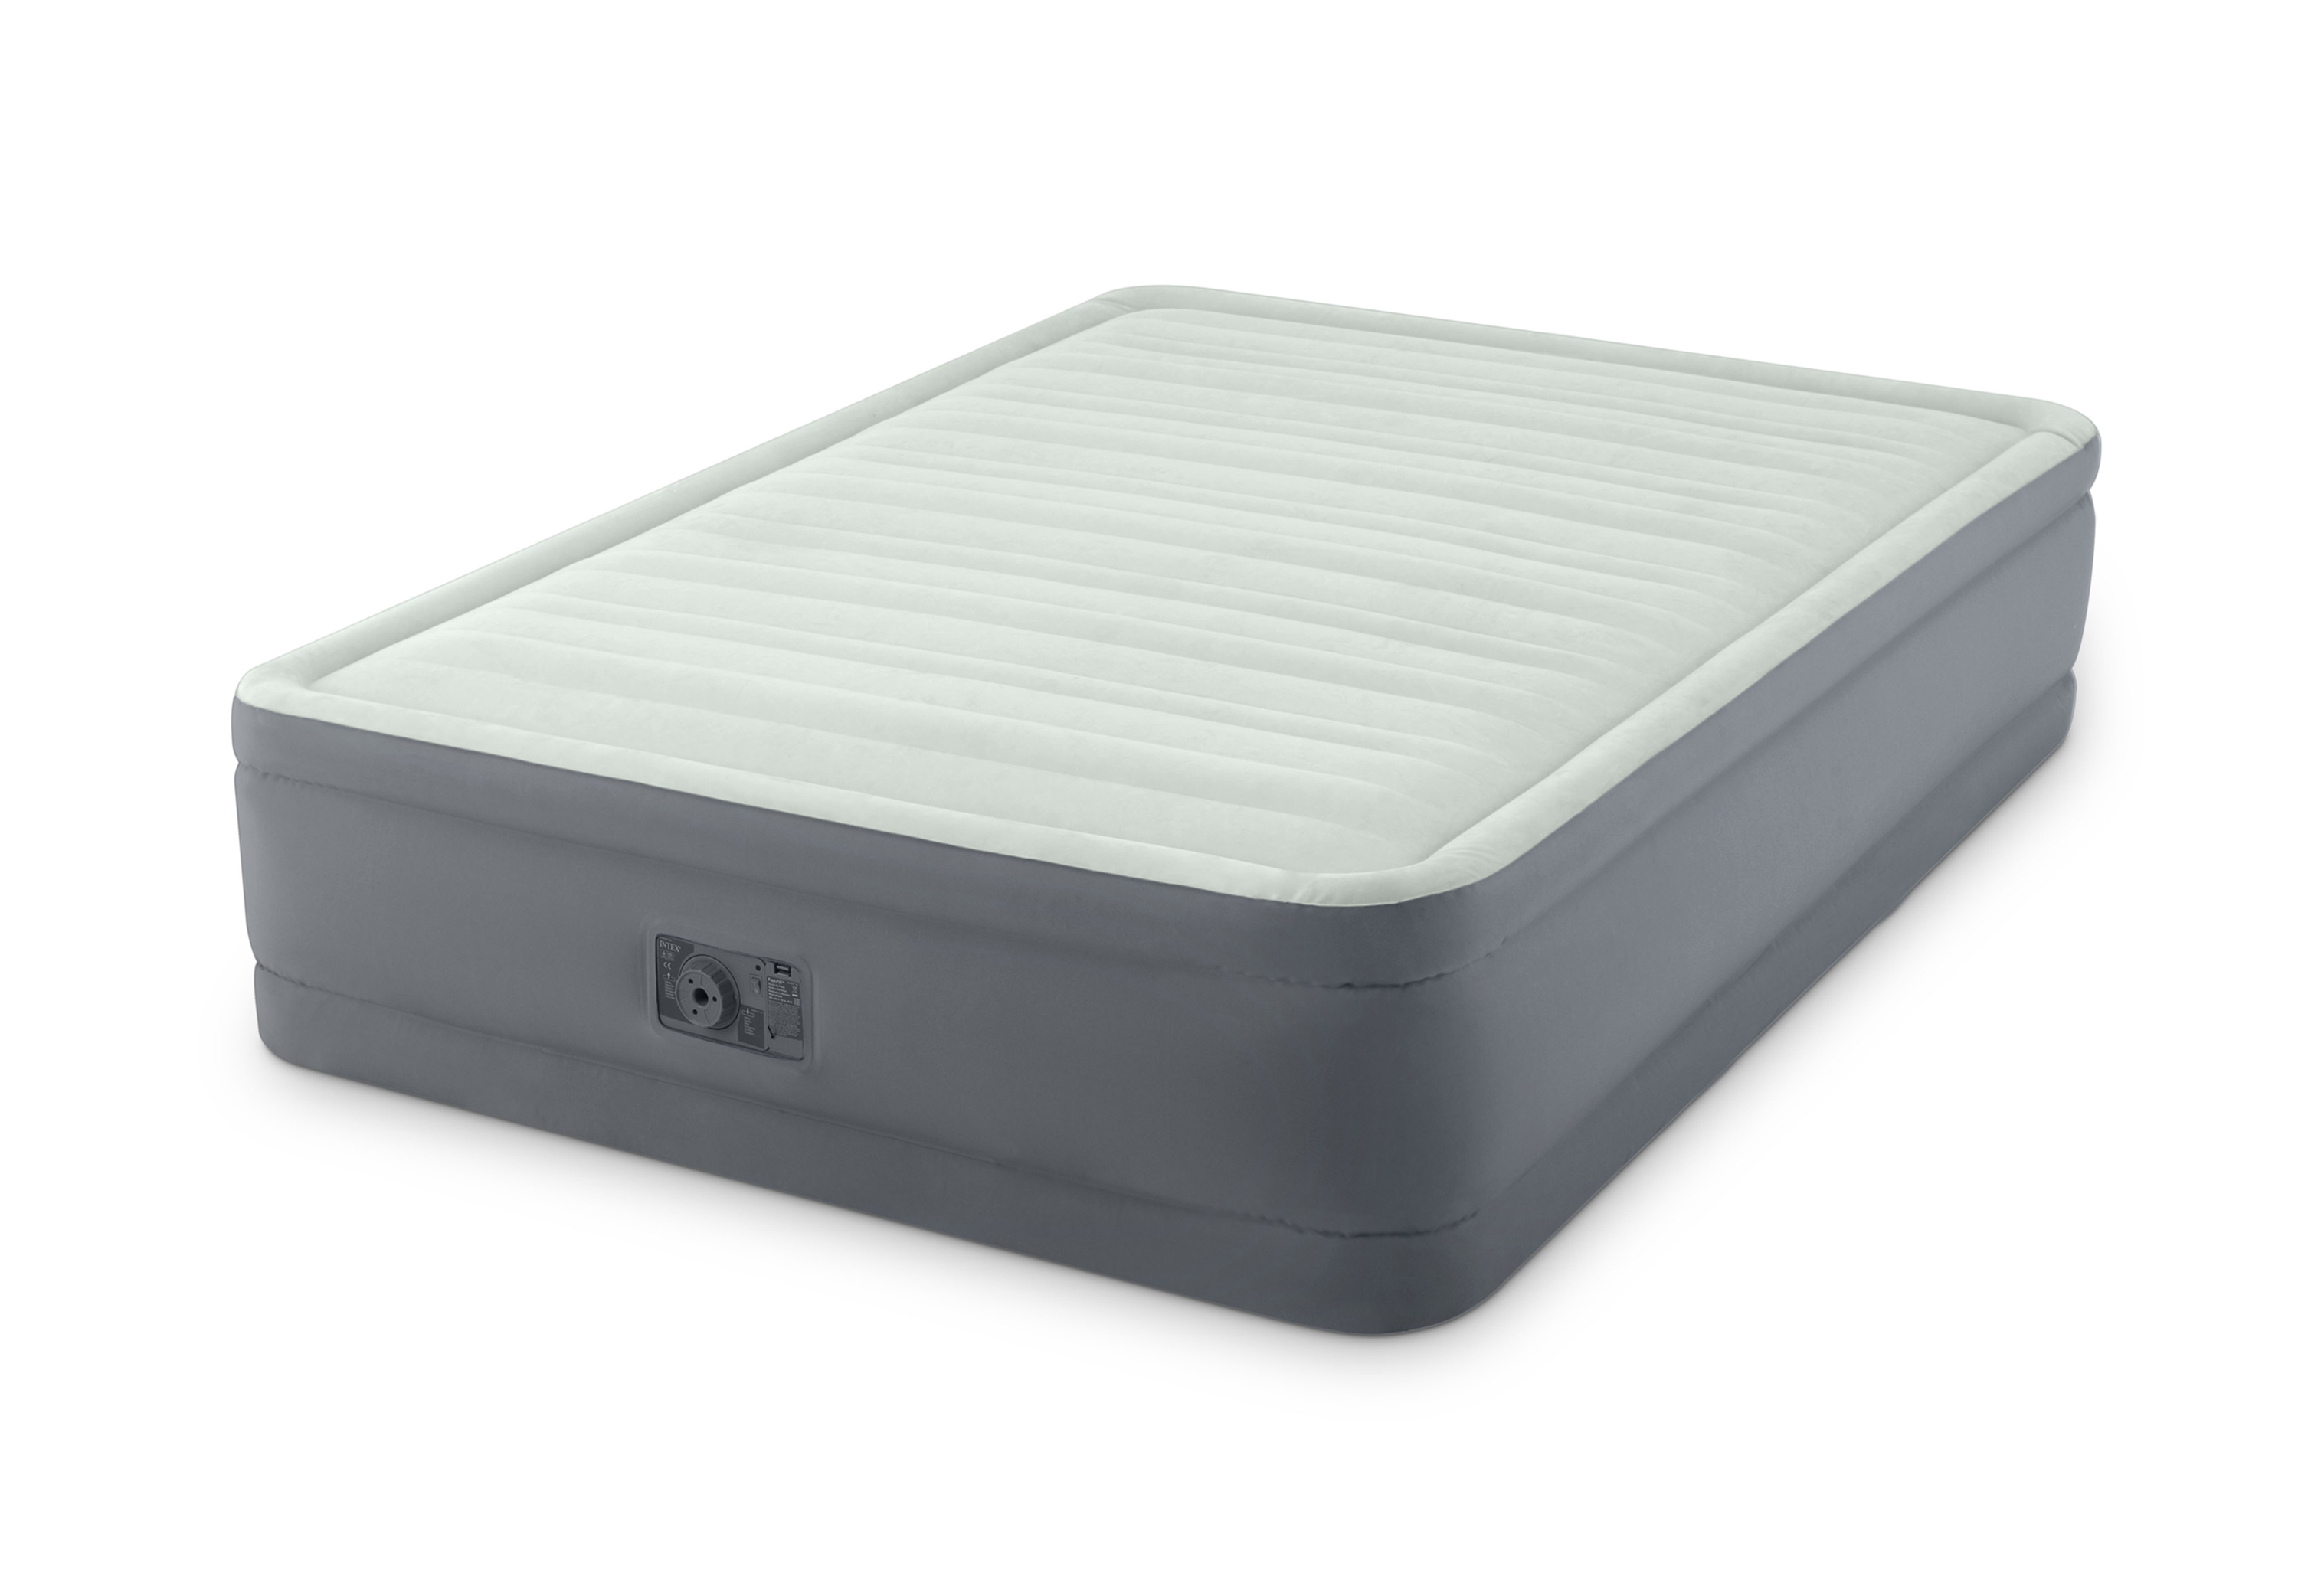 """Intex 18"""" Queen Dura Beam Premaire Elevated Airbed Mattress with Built-In Pump"""